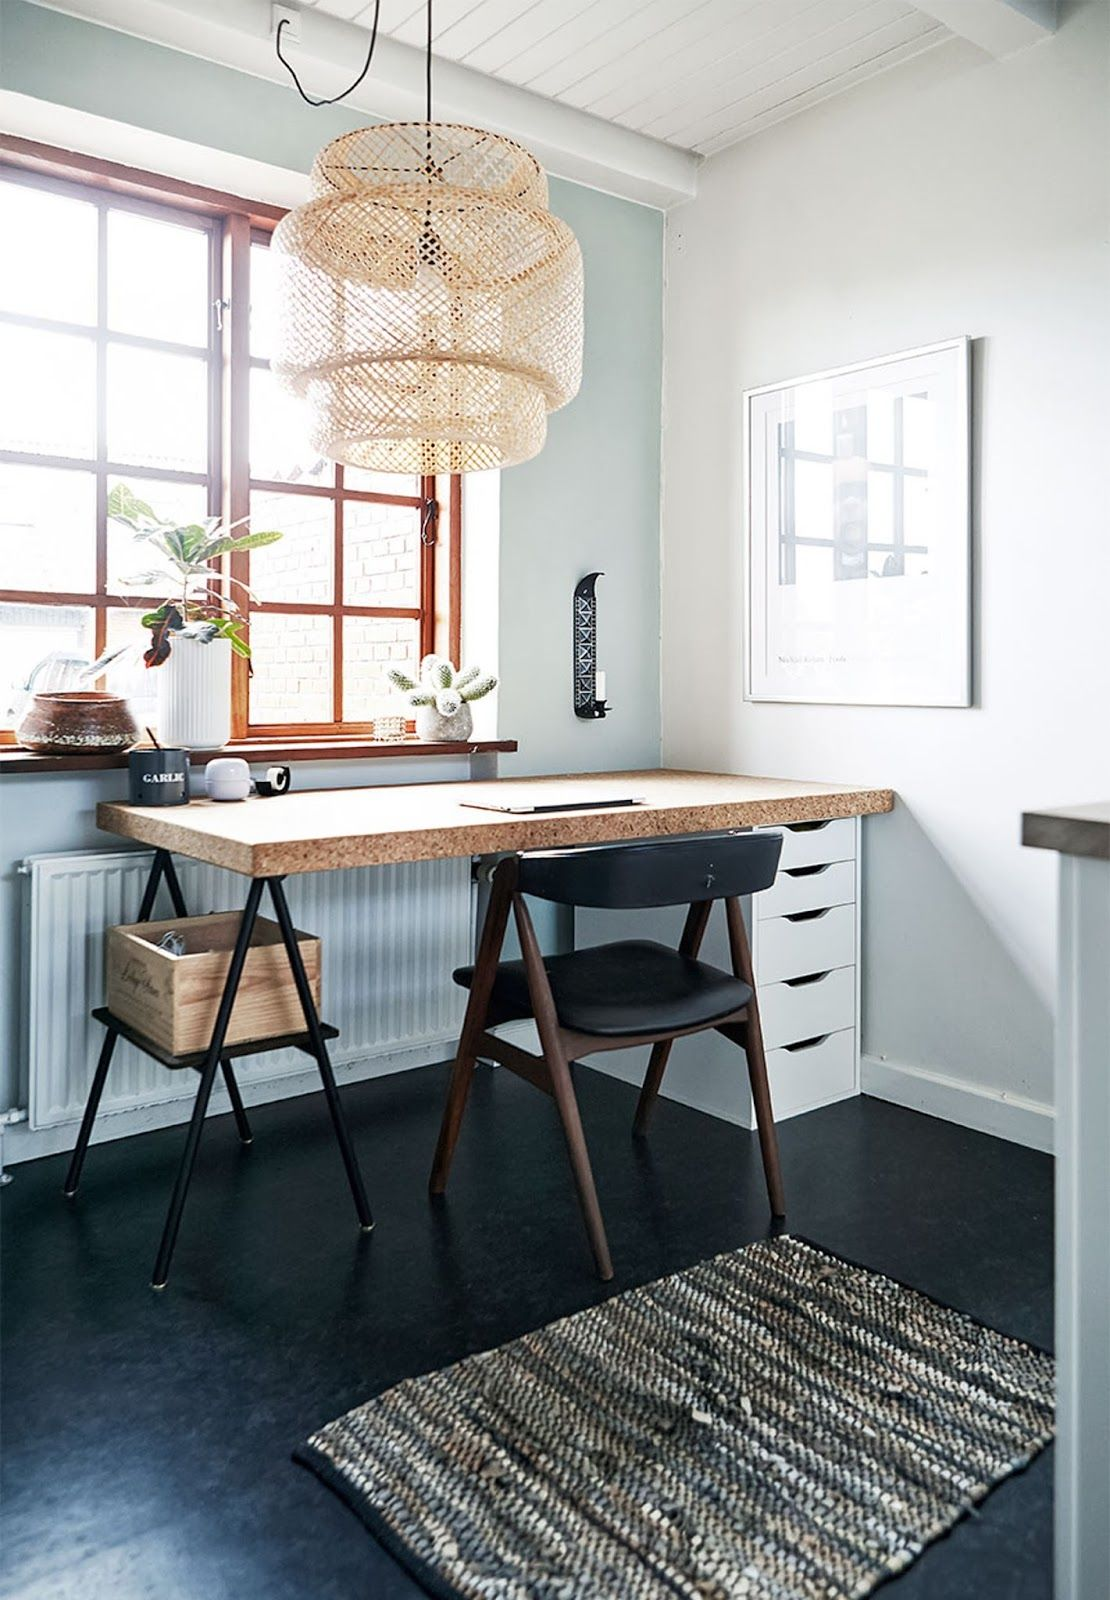 Homemade Small Home Office With A Cool Desk And A Beautiful Vintage Chair.  A Retro Inspired Decor Match The Black Floor Nicely.